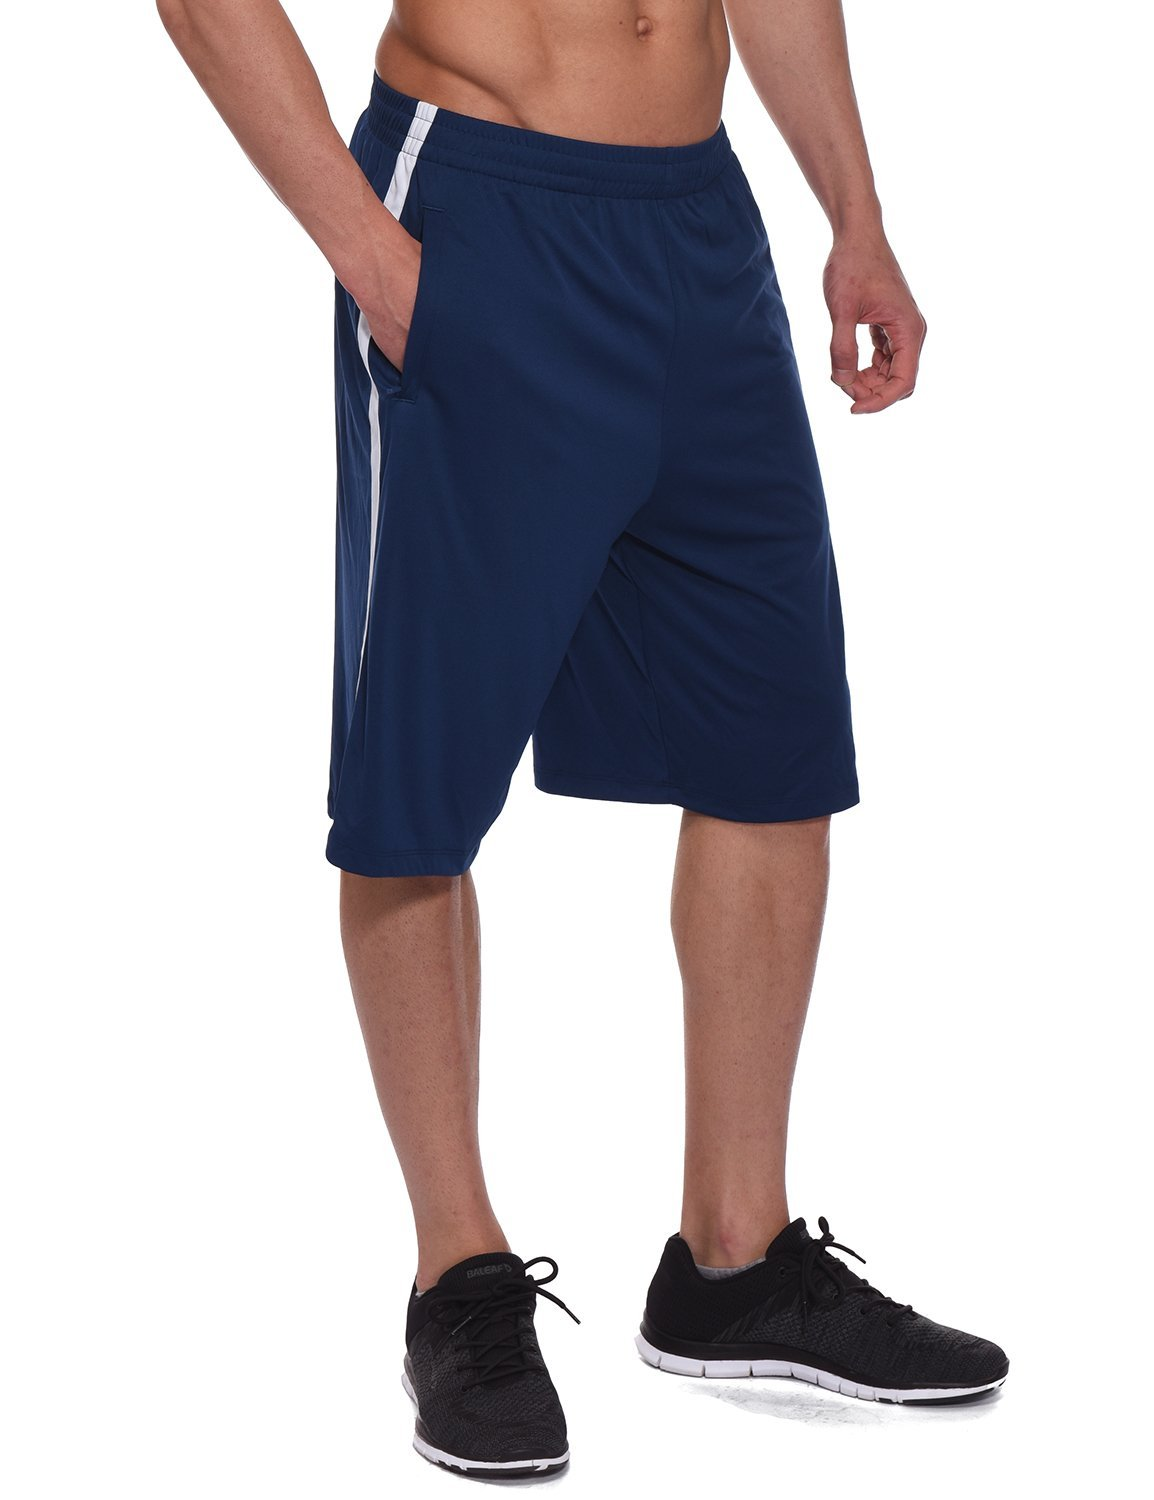 BALEAF Men's Athletic Basketball Shorts Training Sports Workout Shorts Drawstrings Zipper Pockets Navy Size M